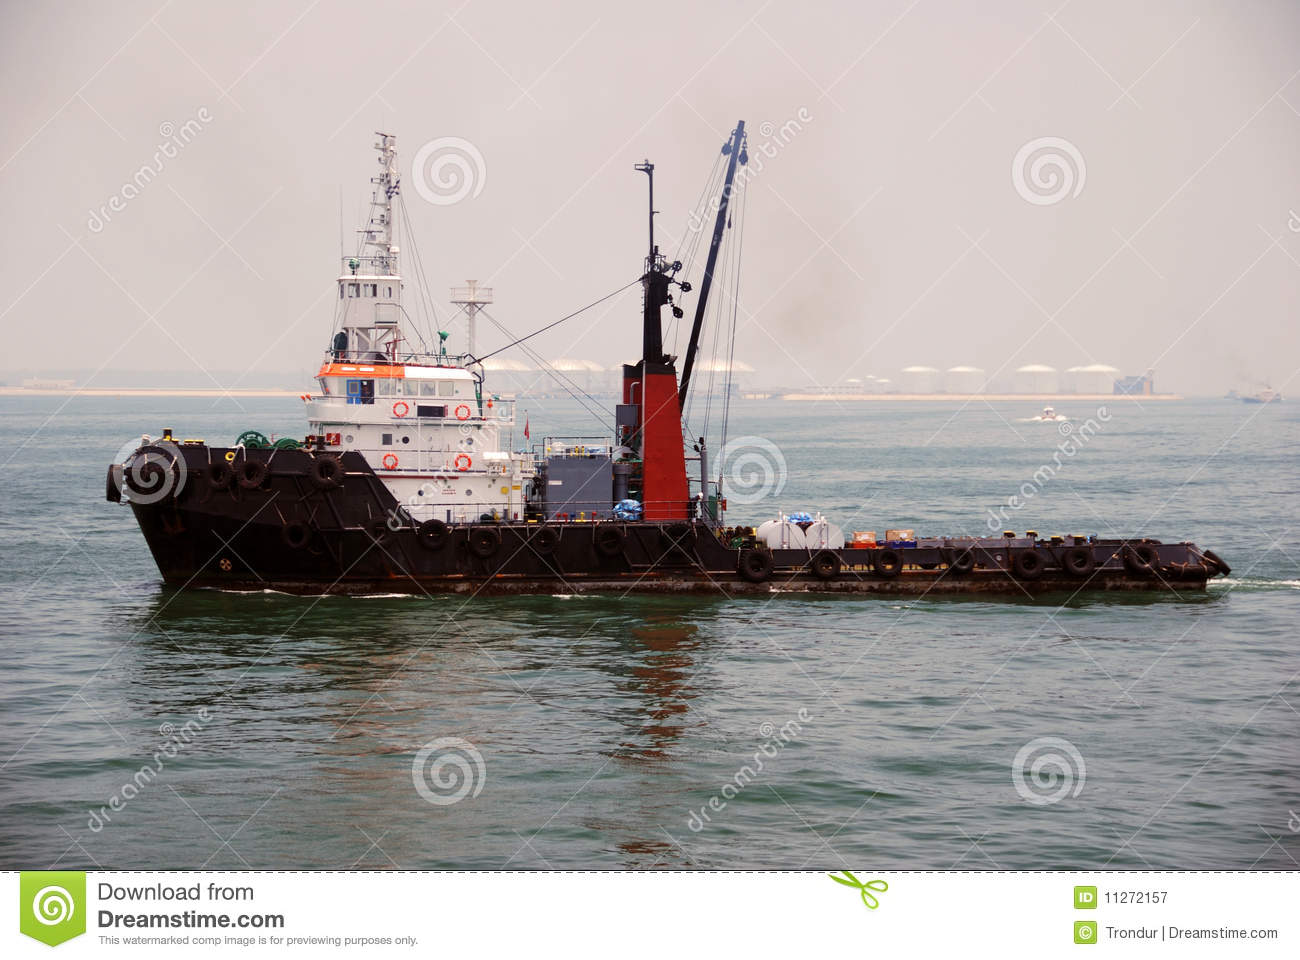 Tug And Barge In Singapore Anchorage  Stock Image - Image of ship